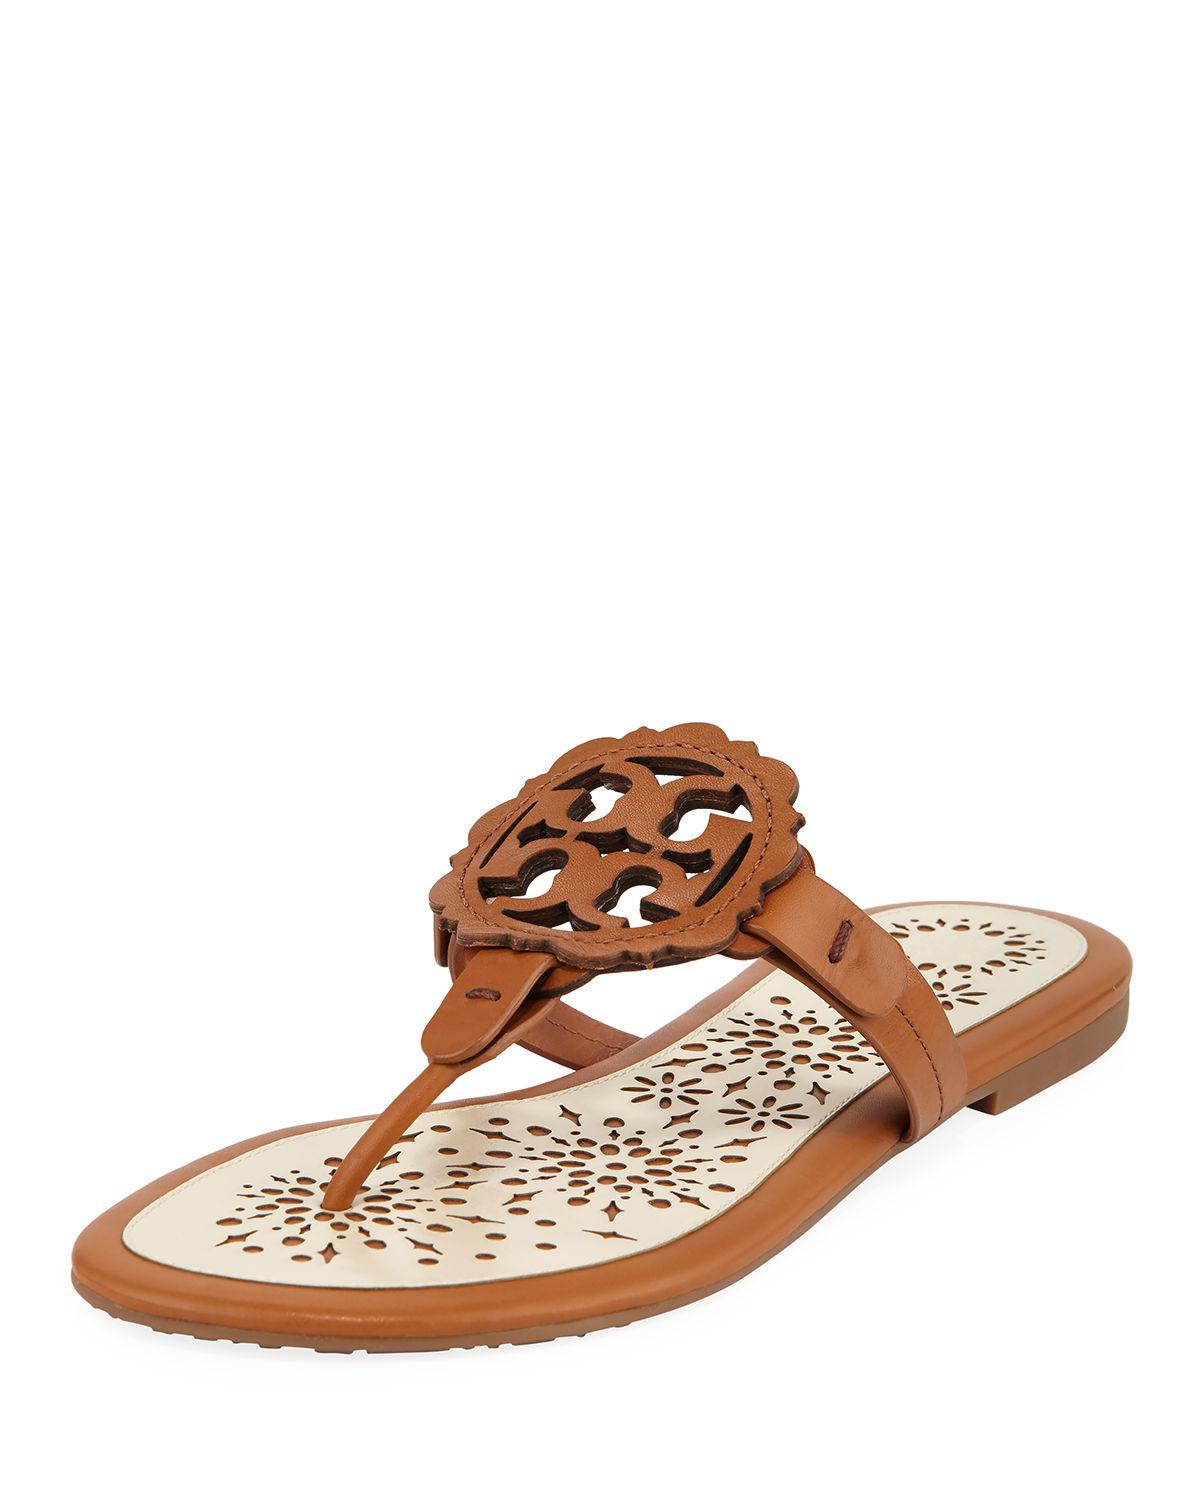 ce5444c8c Tory Burch Women s Miller Scallop Leather Thong Sandals In Tan  New ...